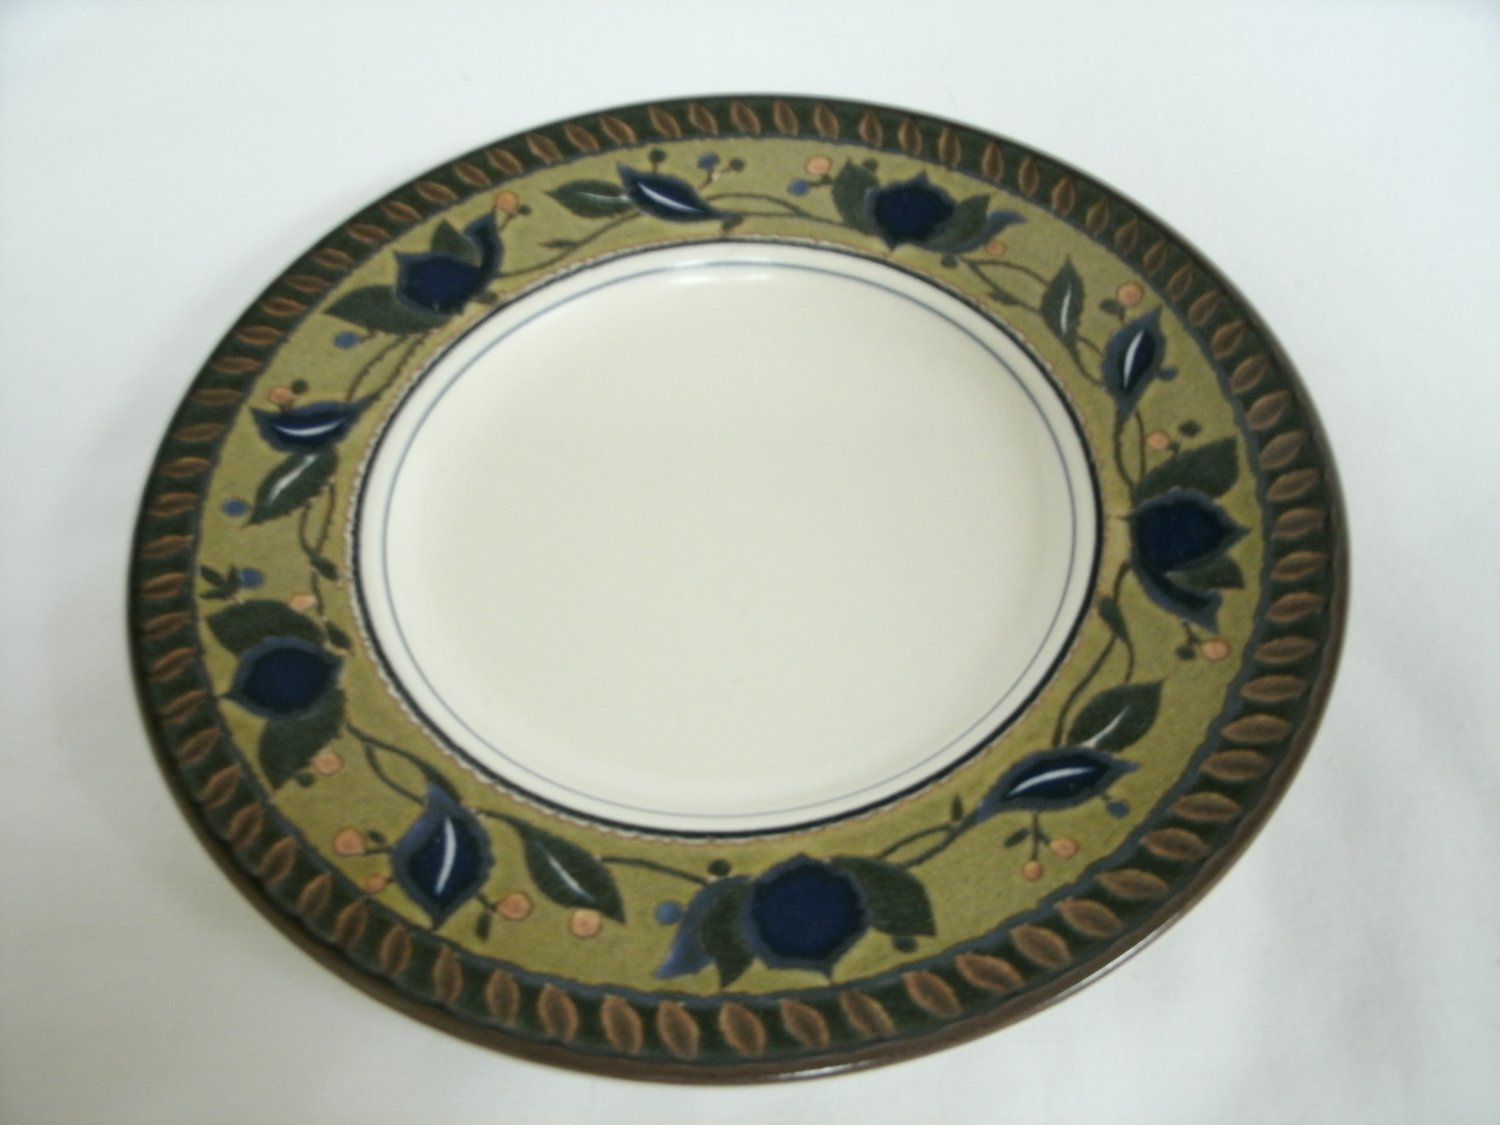 Mikasa Intaglio Arabella Saucer For Flat Cup Beige and Blue Stoneware With Leaf Design 6 1/2 Inches